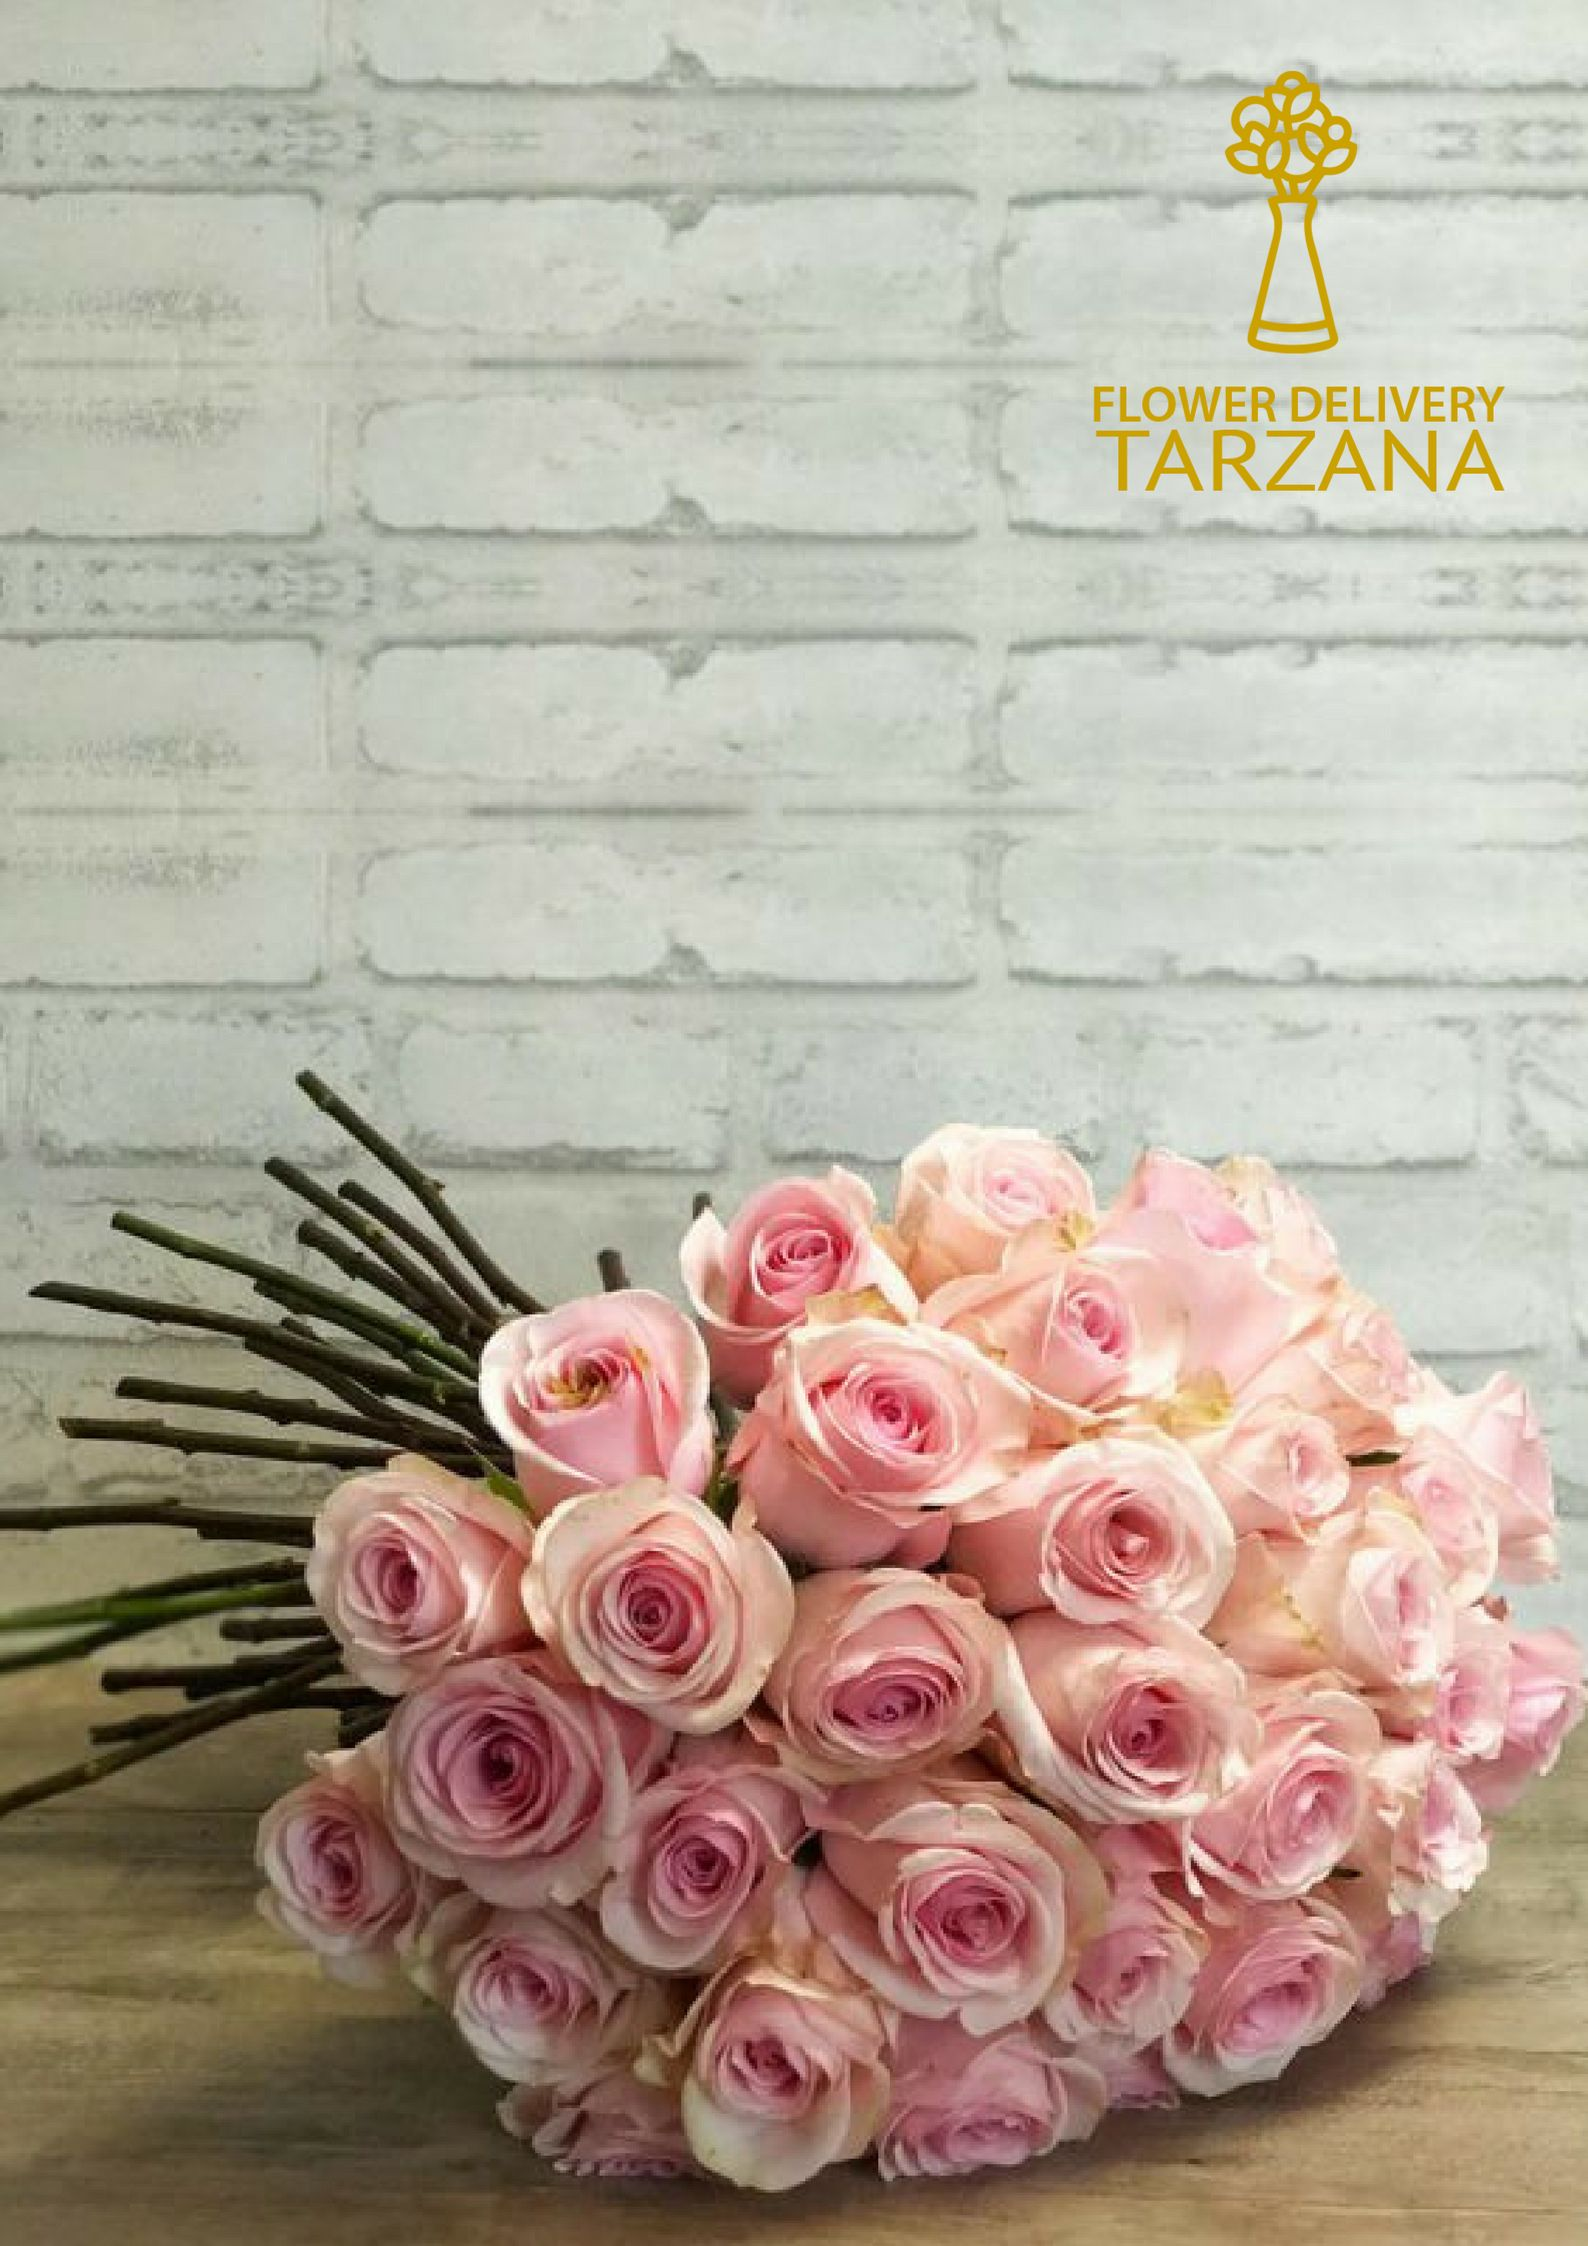 Gift Bunch Of Pink Roses To Your Dear Ones Which Help You To Express